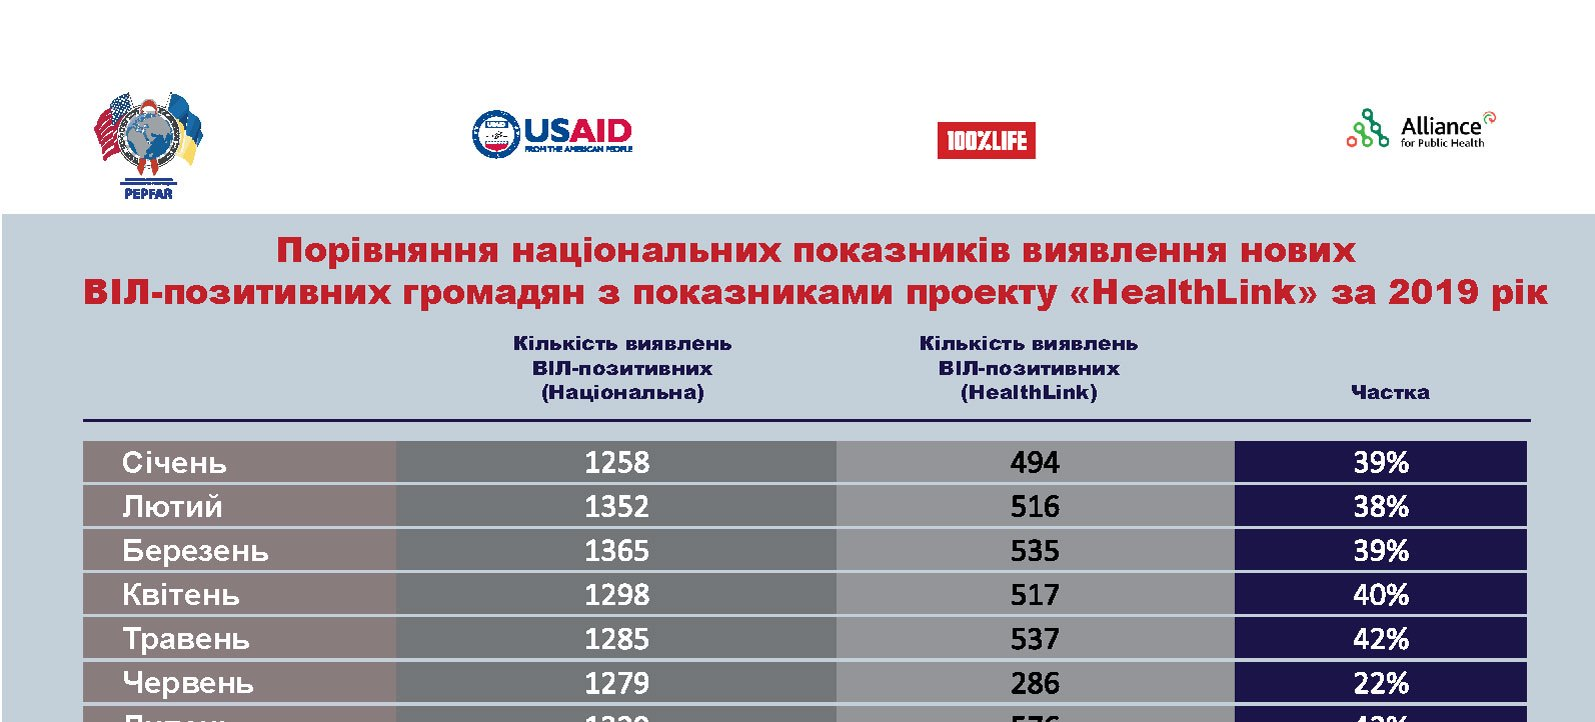 About 6 000 lives saved: USAID HealthLink saved every third new HIV patient in 2019